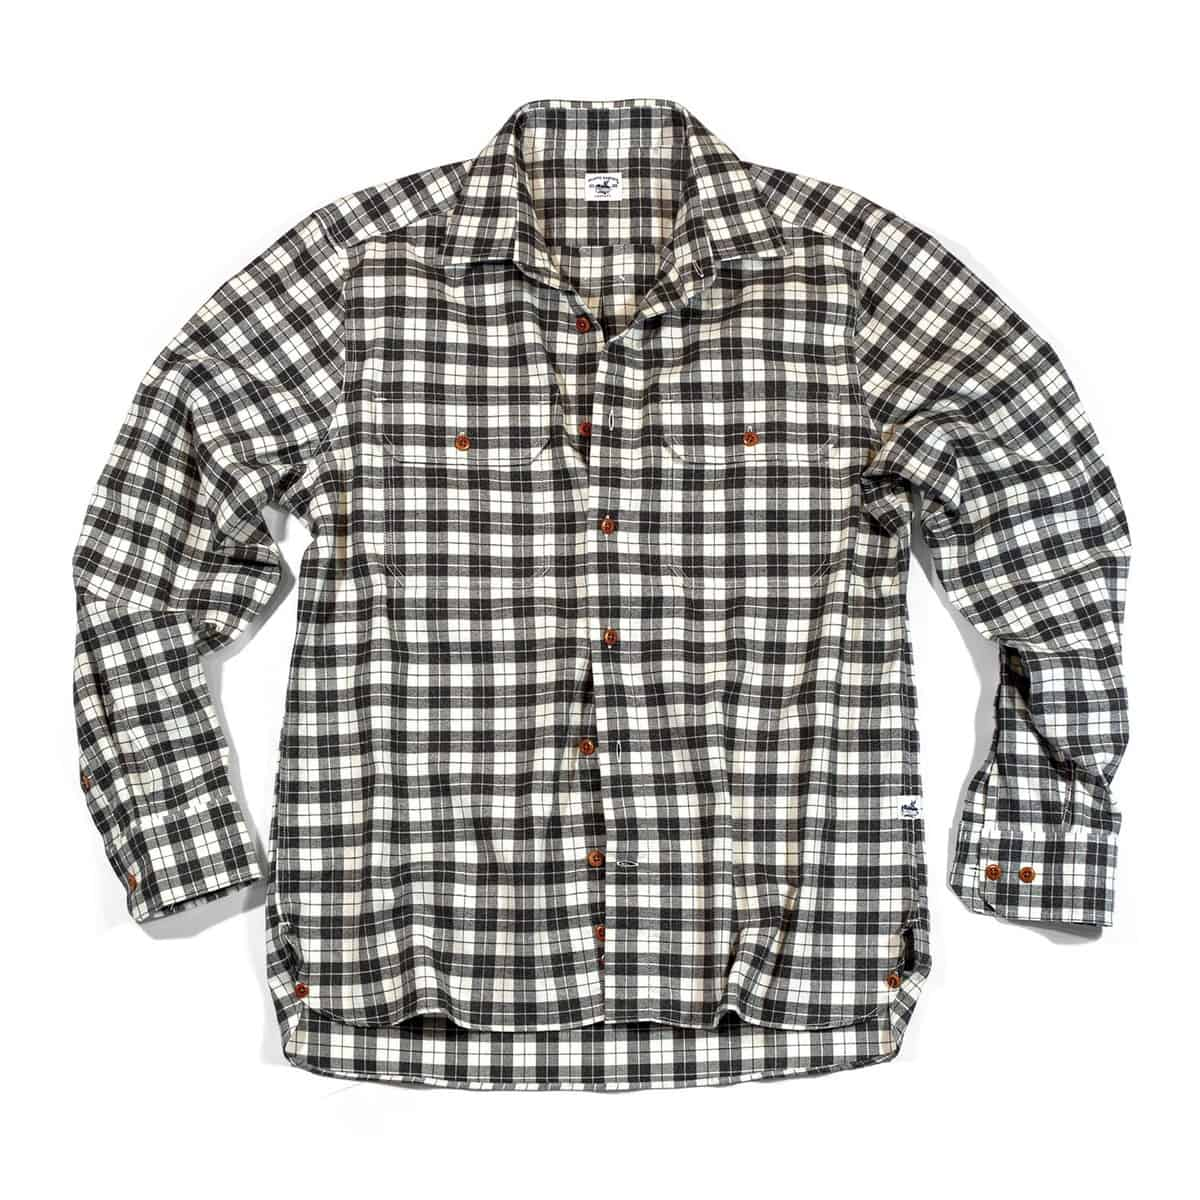 Buy The Bayman's Flannel Shirt - Cream/Charcoal